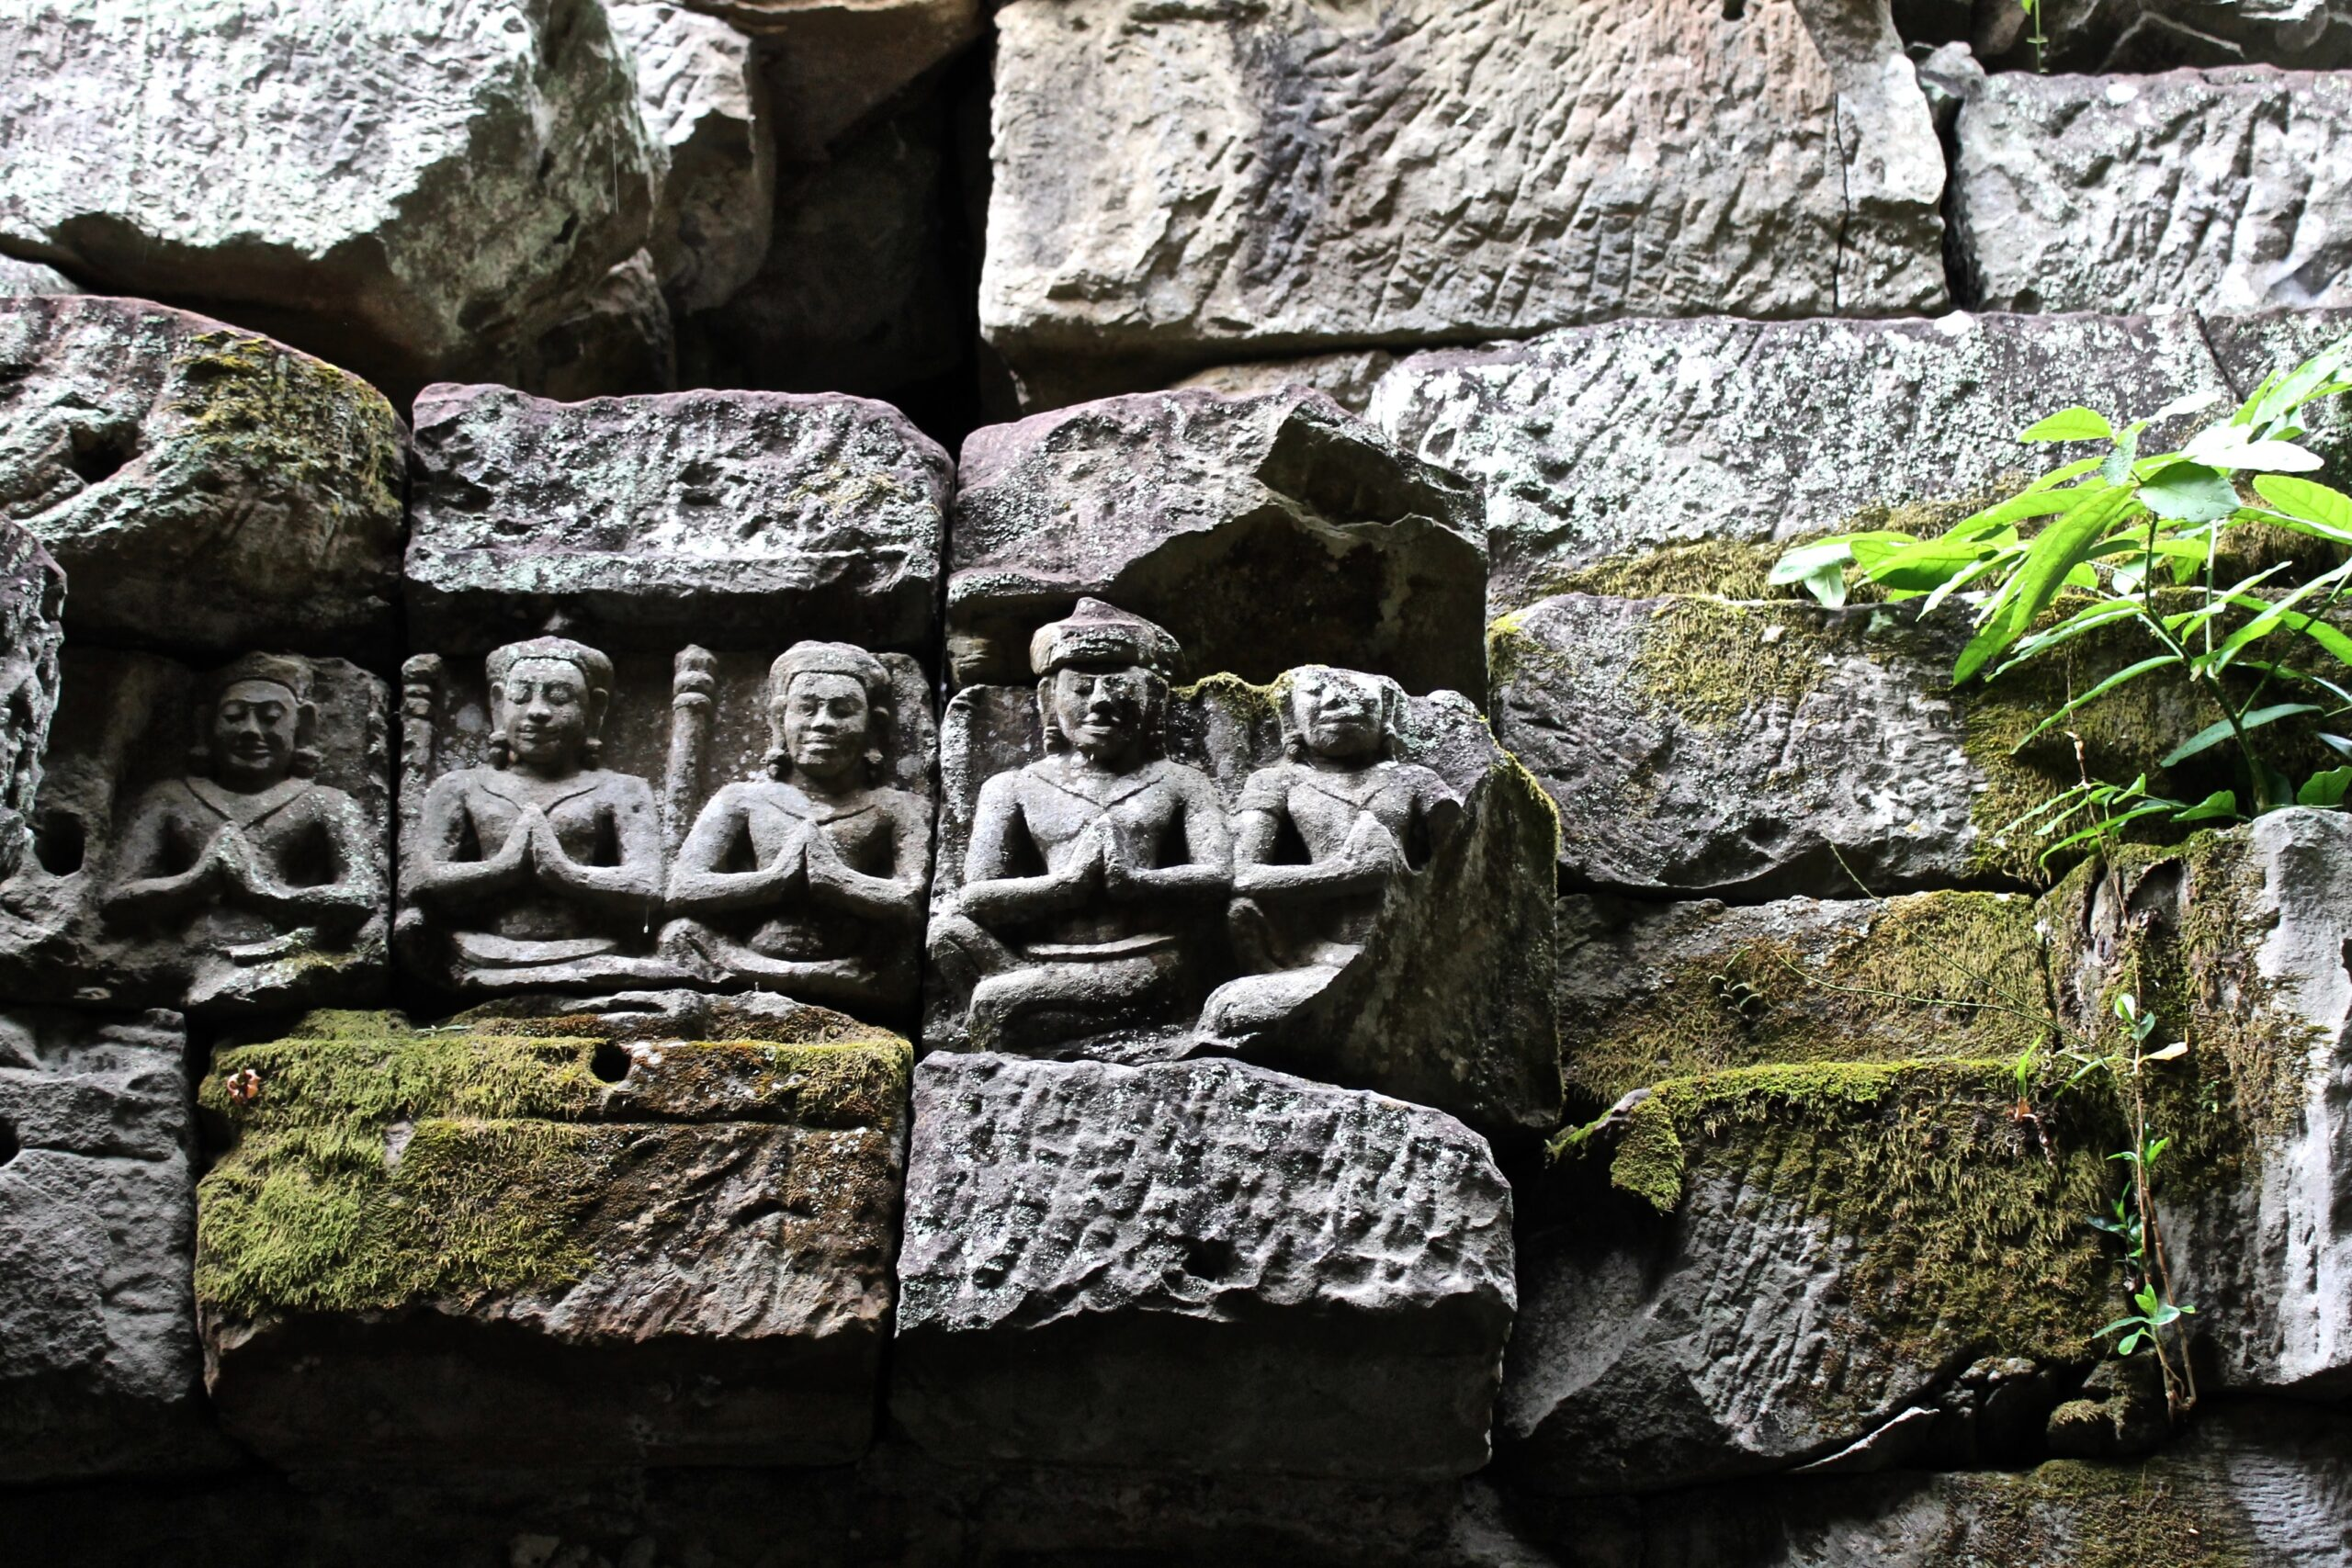 Religious carving in stone formation